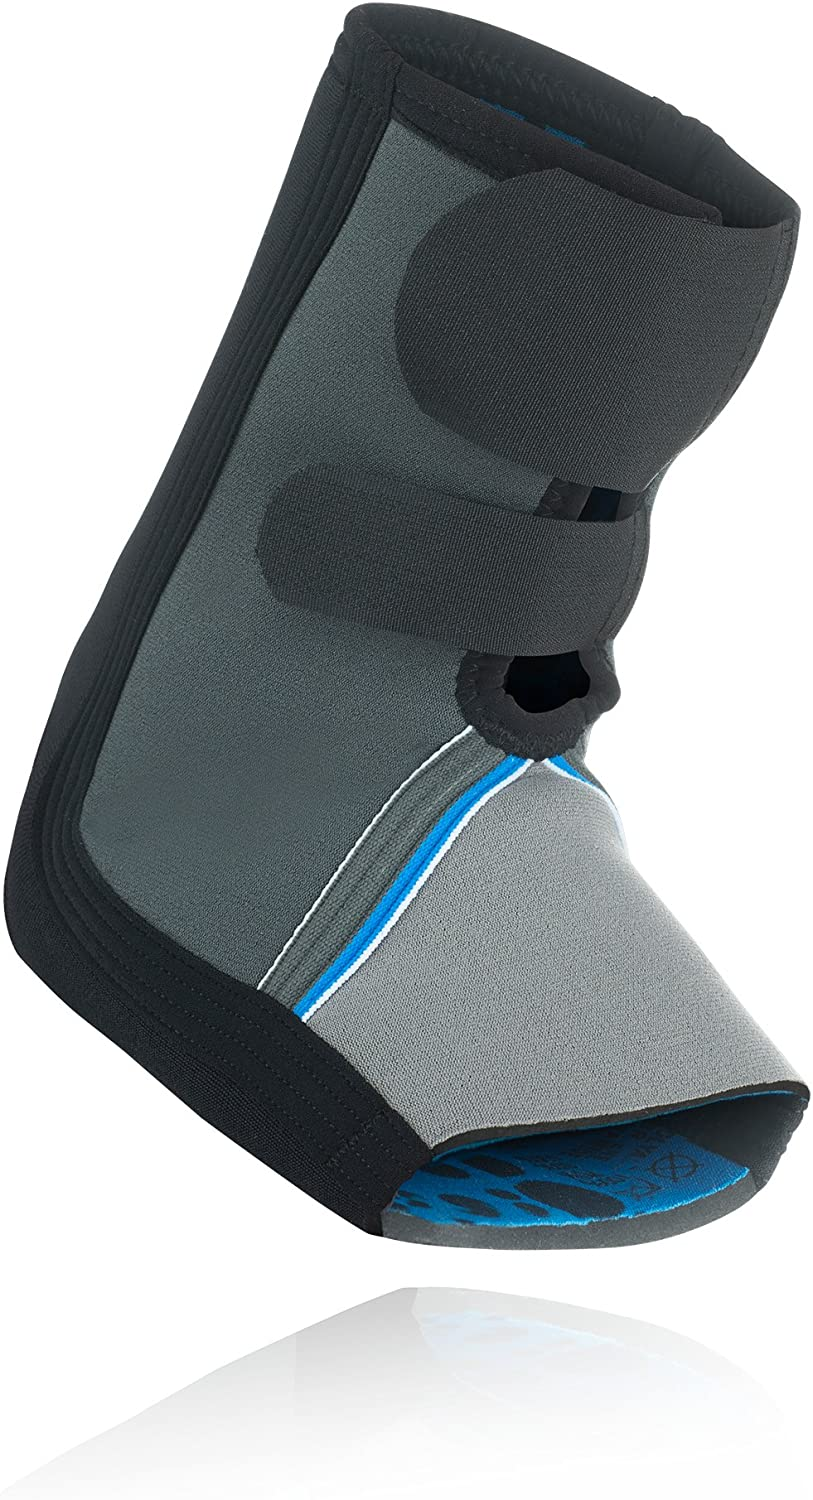 Rehband Core Line Ankle Support 7770 5mm - Mediu Limited Ranking TOP4 Special Price Grey Neoprene